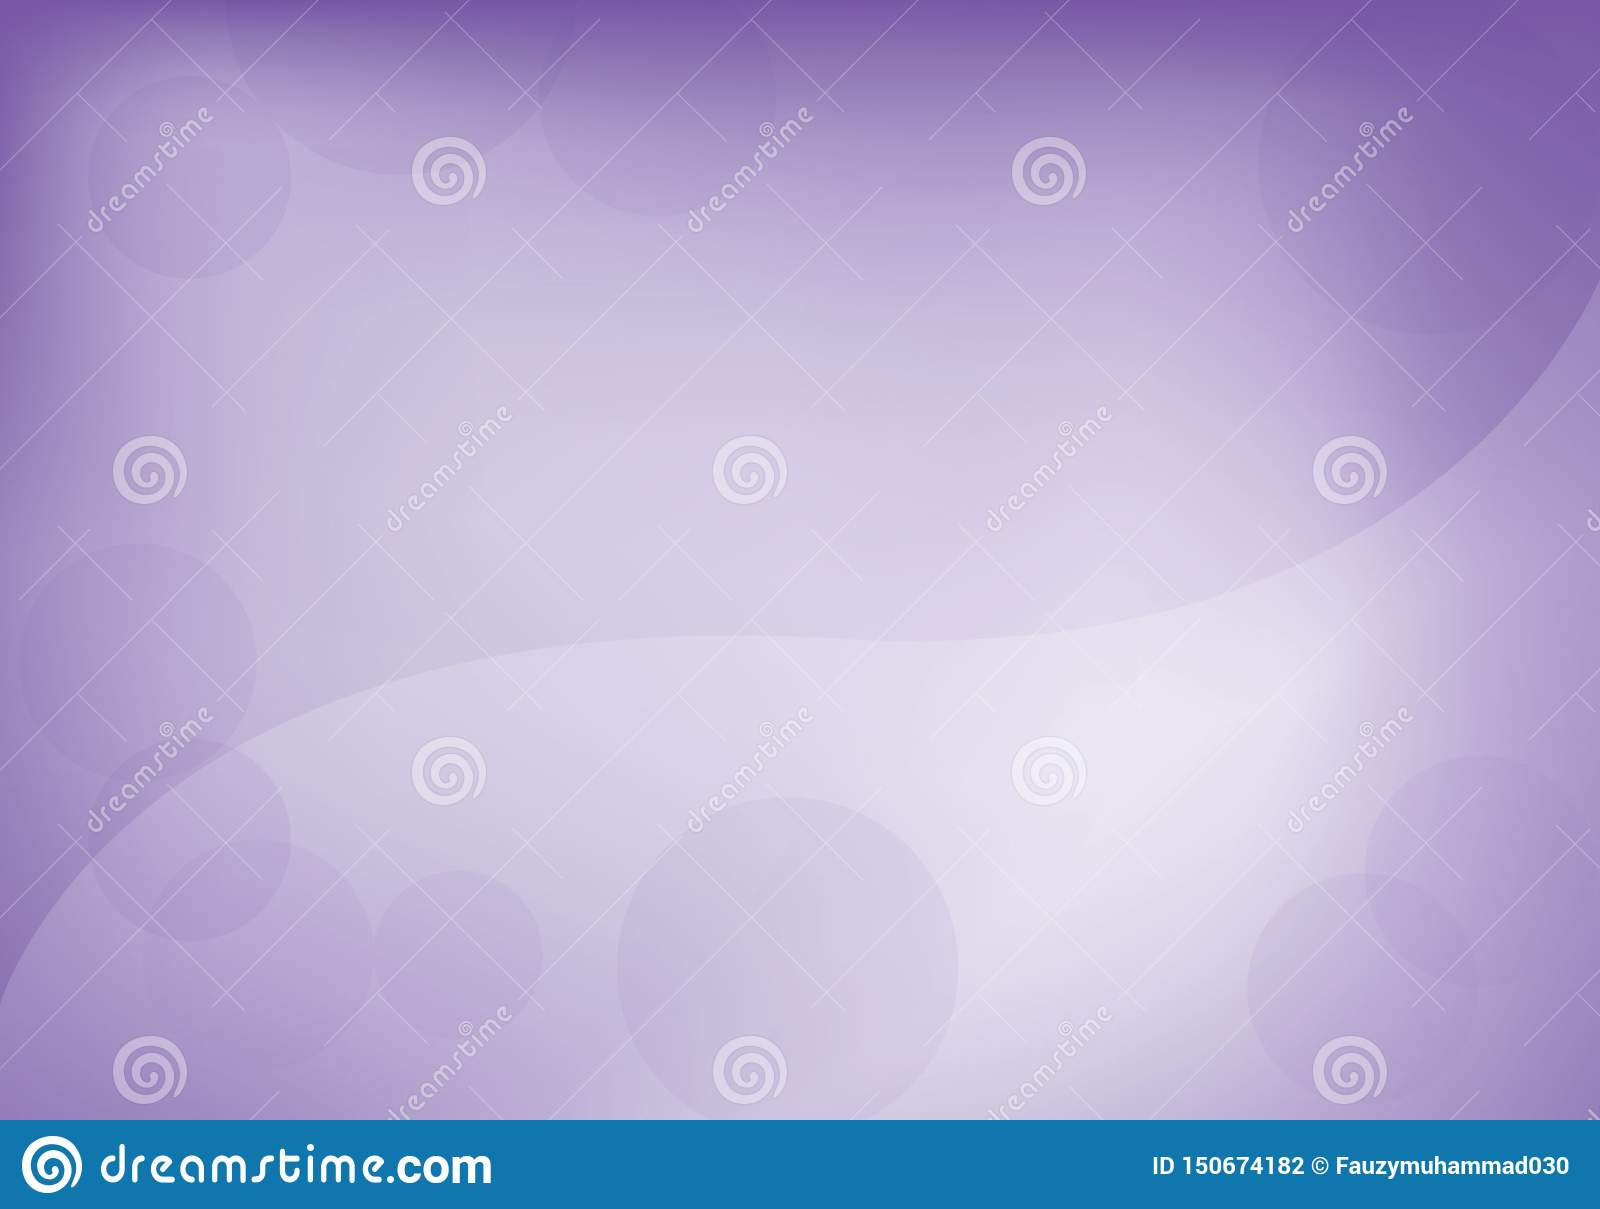 Abstract violet and white background